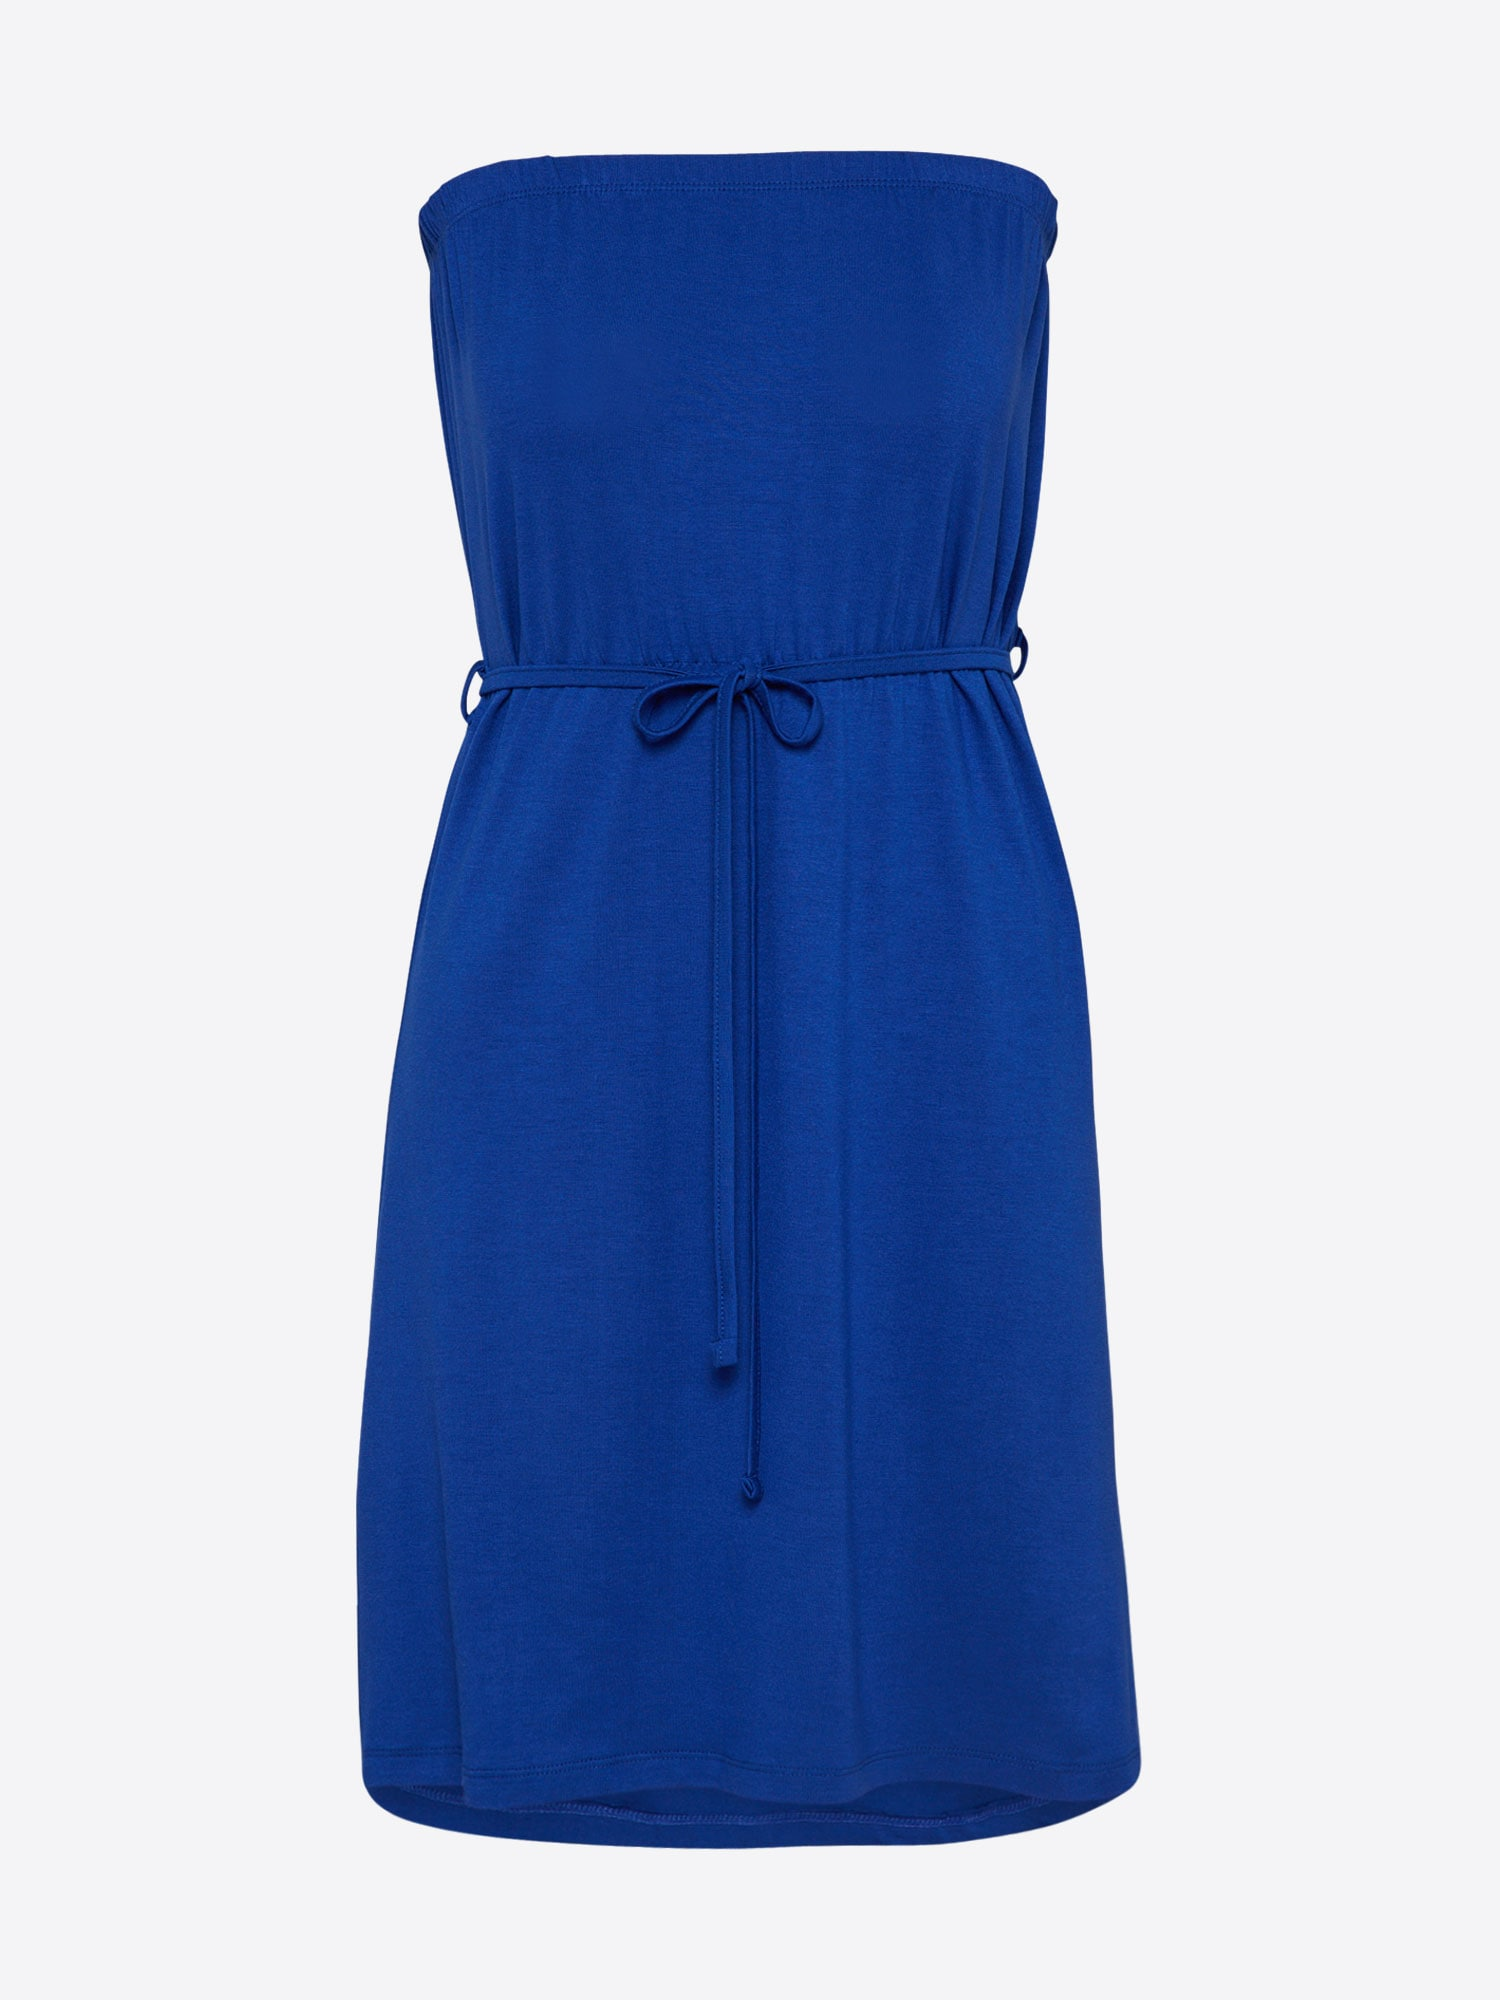 ABOUT YOU Zomerjurk 'Anna' royal blue/koningsblauw